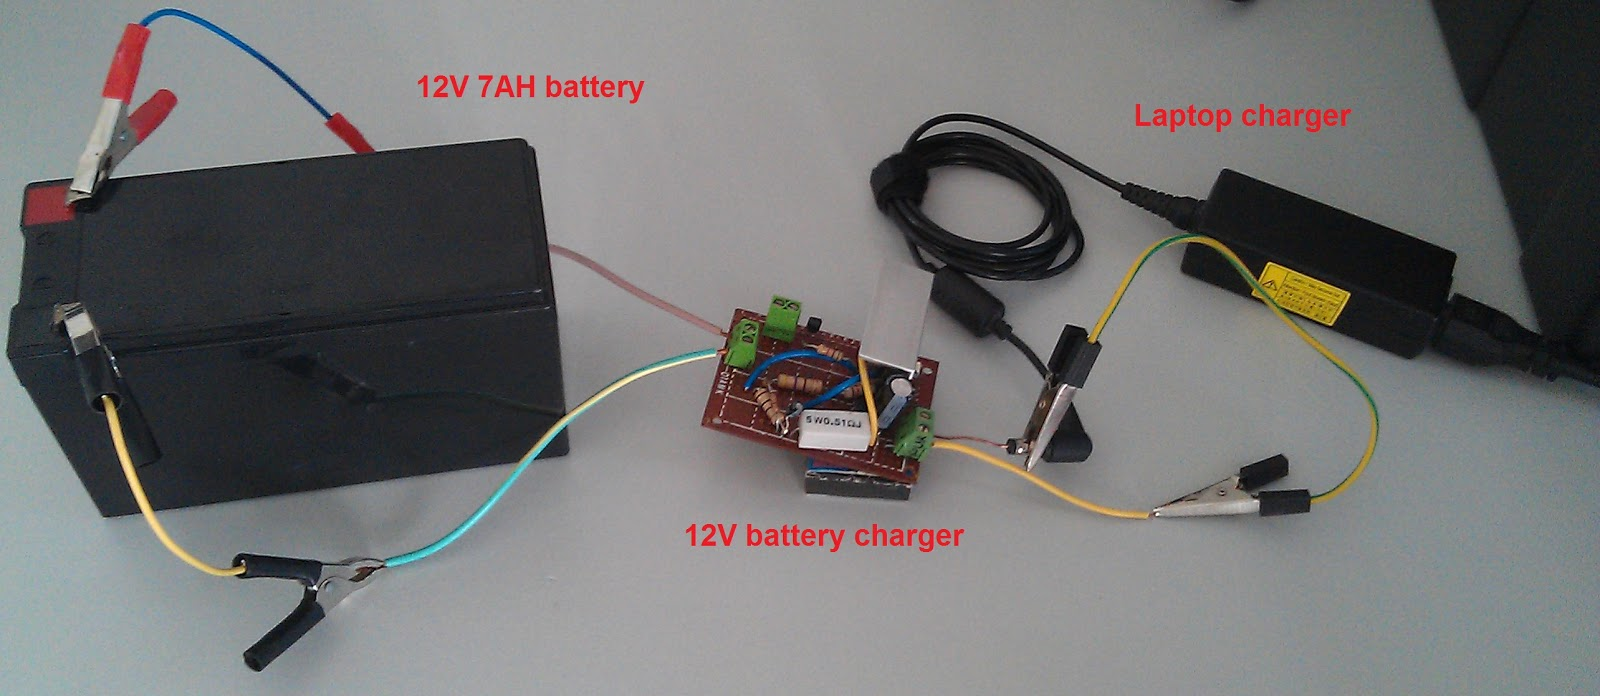 How To Charge Marine And Rv Batteries In Parallel as well How To Wire 6v Batteries In Series Or Parallel Configuration moreover 200 600w Dc Dc Konvertor as well 24v 250ah Lithium Ion Battery together with Gelled lead acid battery charger circuit 10221. on 12 volt lead acid battery charger circuit